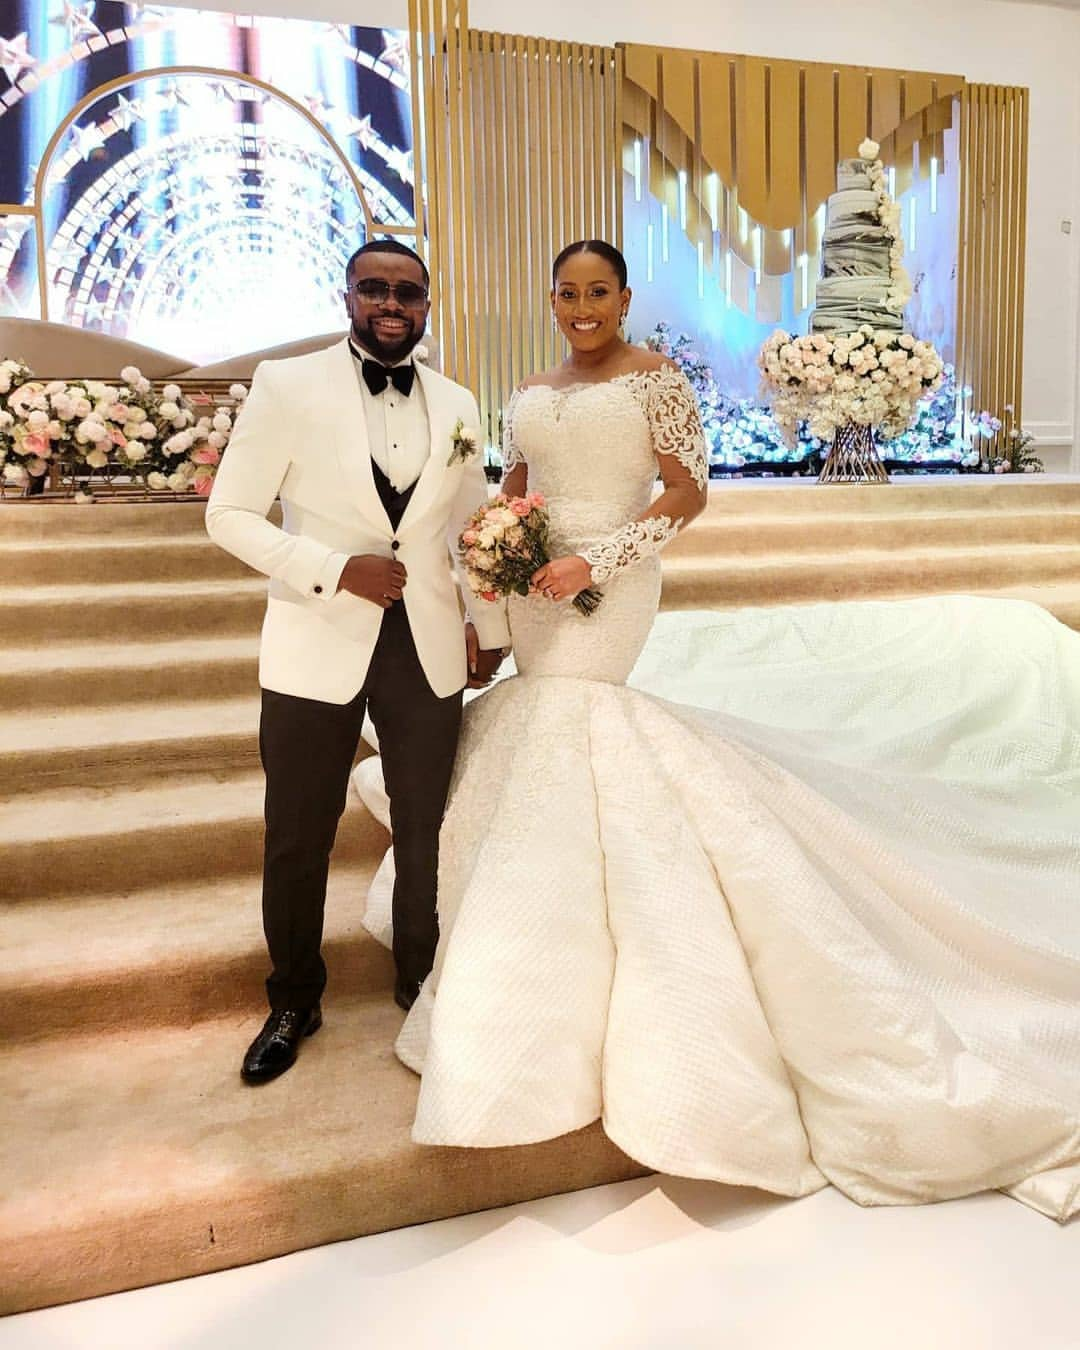 nollywood - Williams Uchemba And Wife Dancing At Their Wedding As He Sprays Her Money 12722669_lindaikejiblogofficial1605989873244754290705526388112244200299_jpeg7db1bb01ff8607f0d743e07897bb1b65